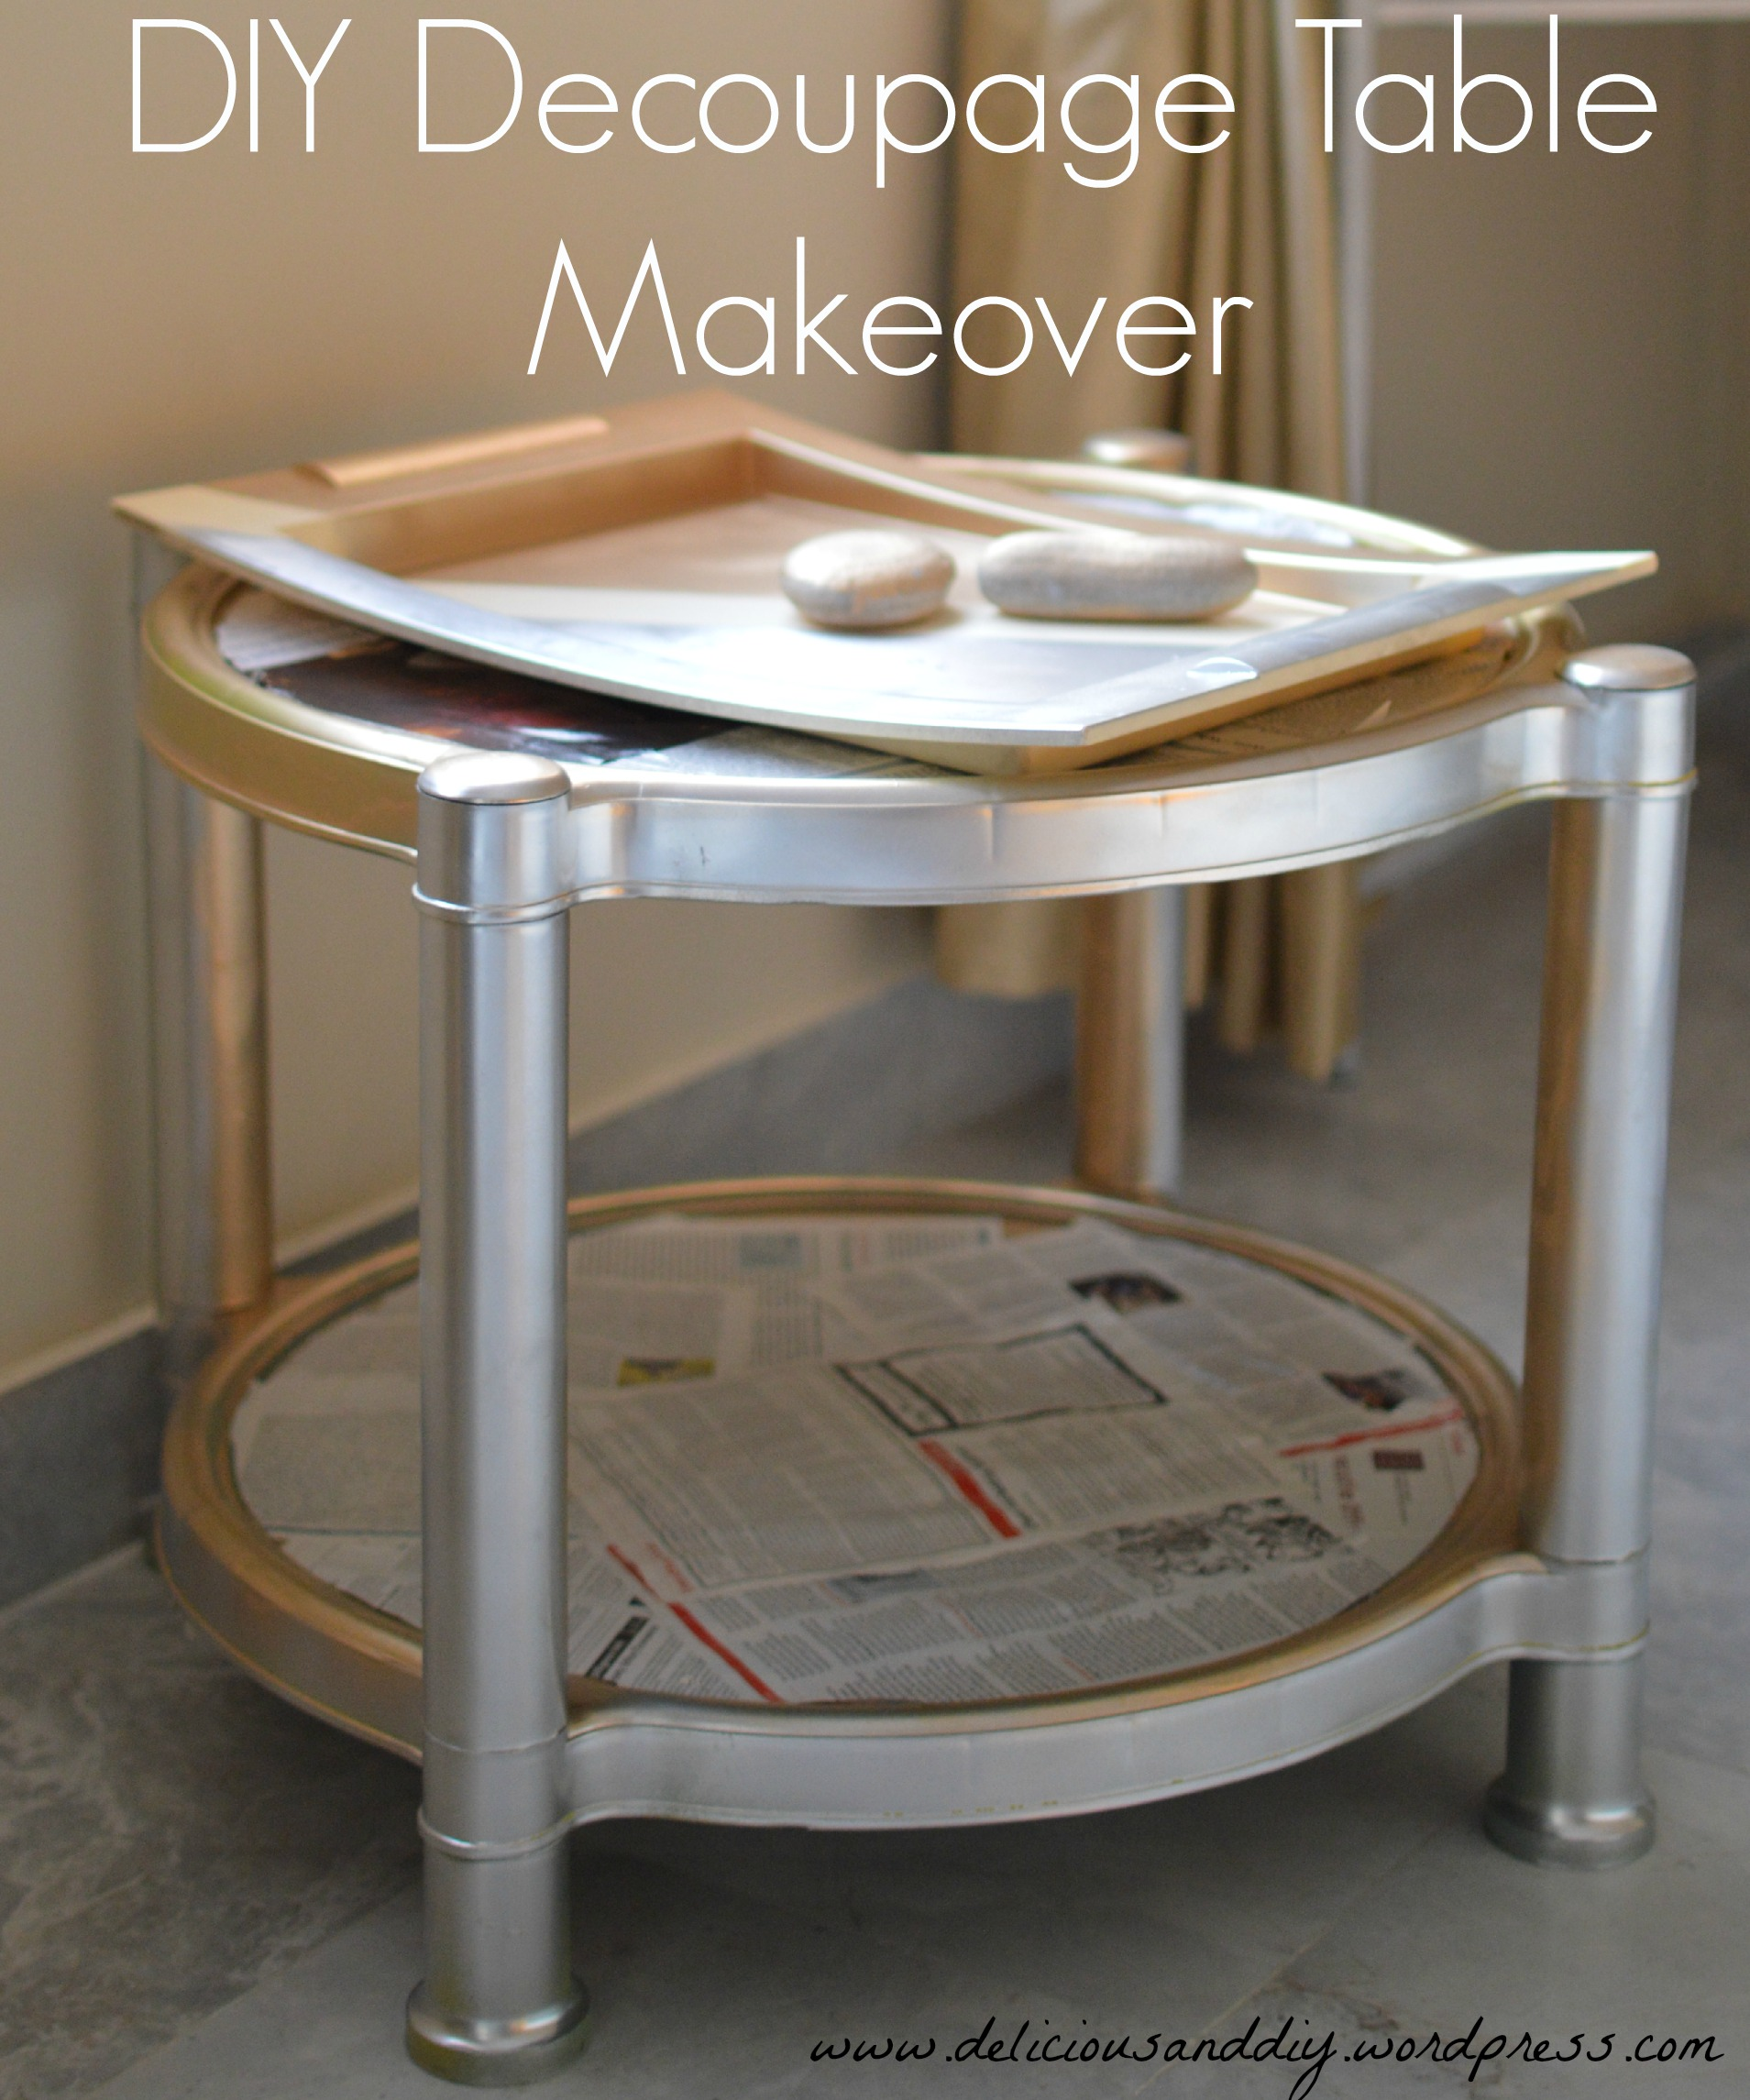 DIY Decoupage Table Makeover Delicious And DIY